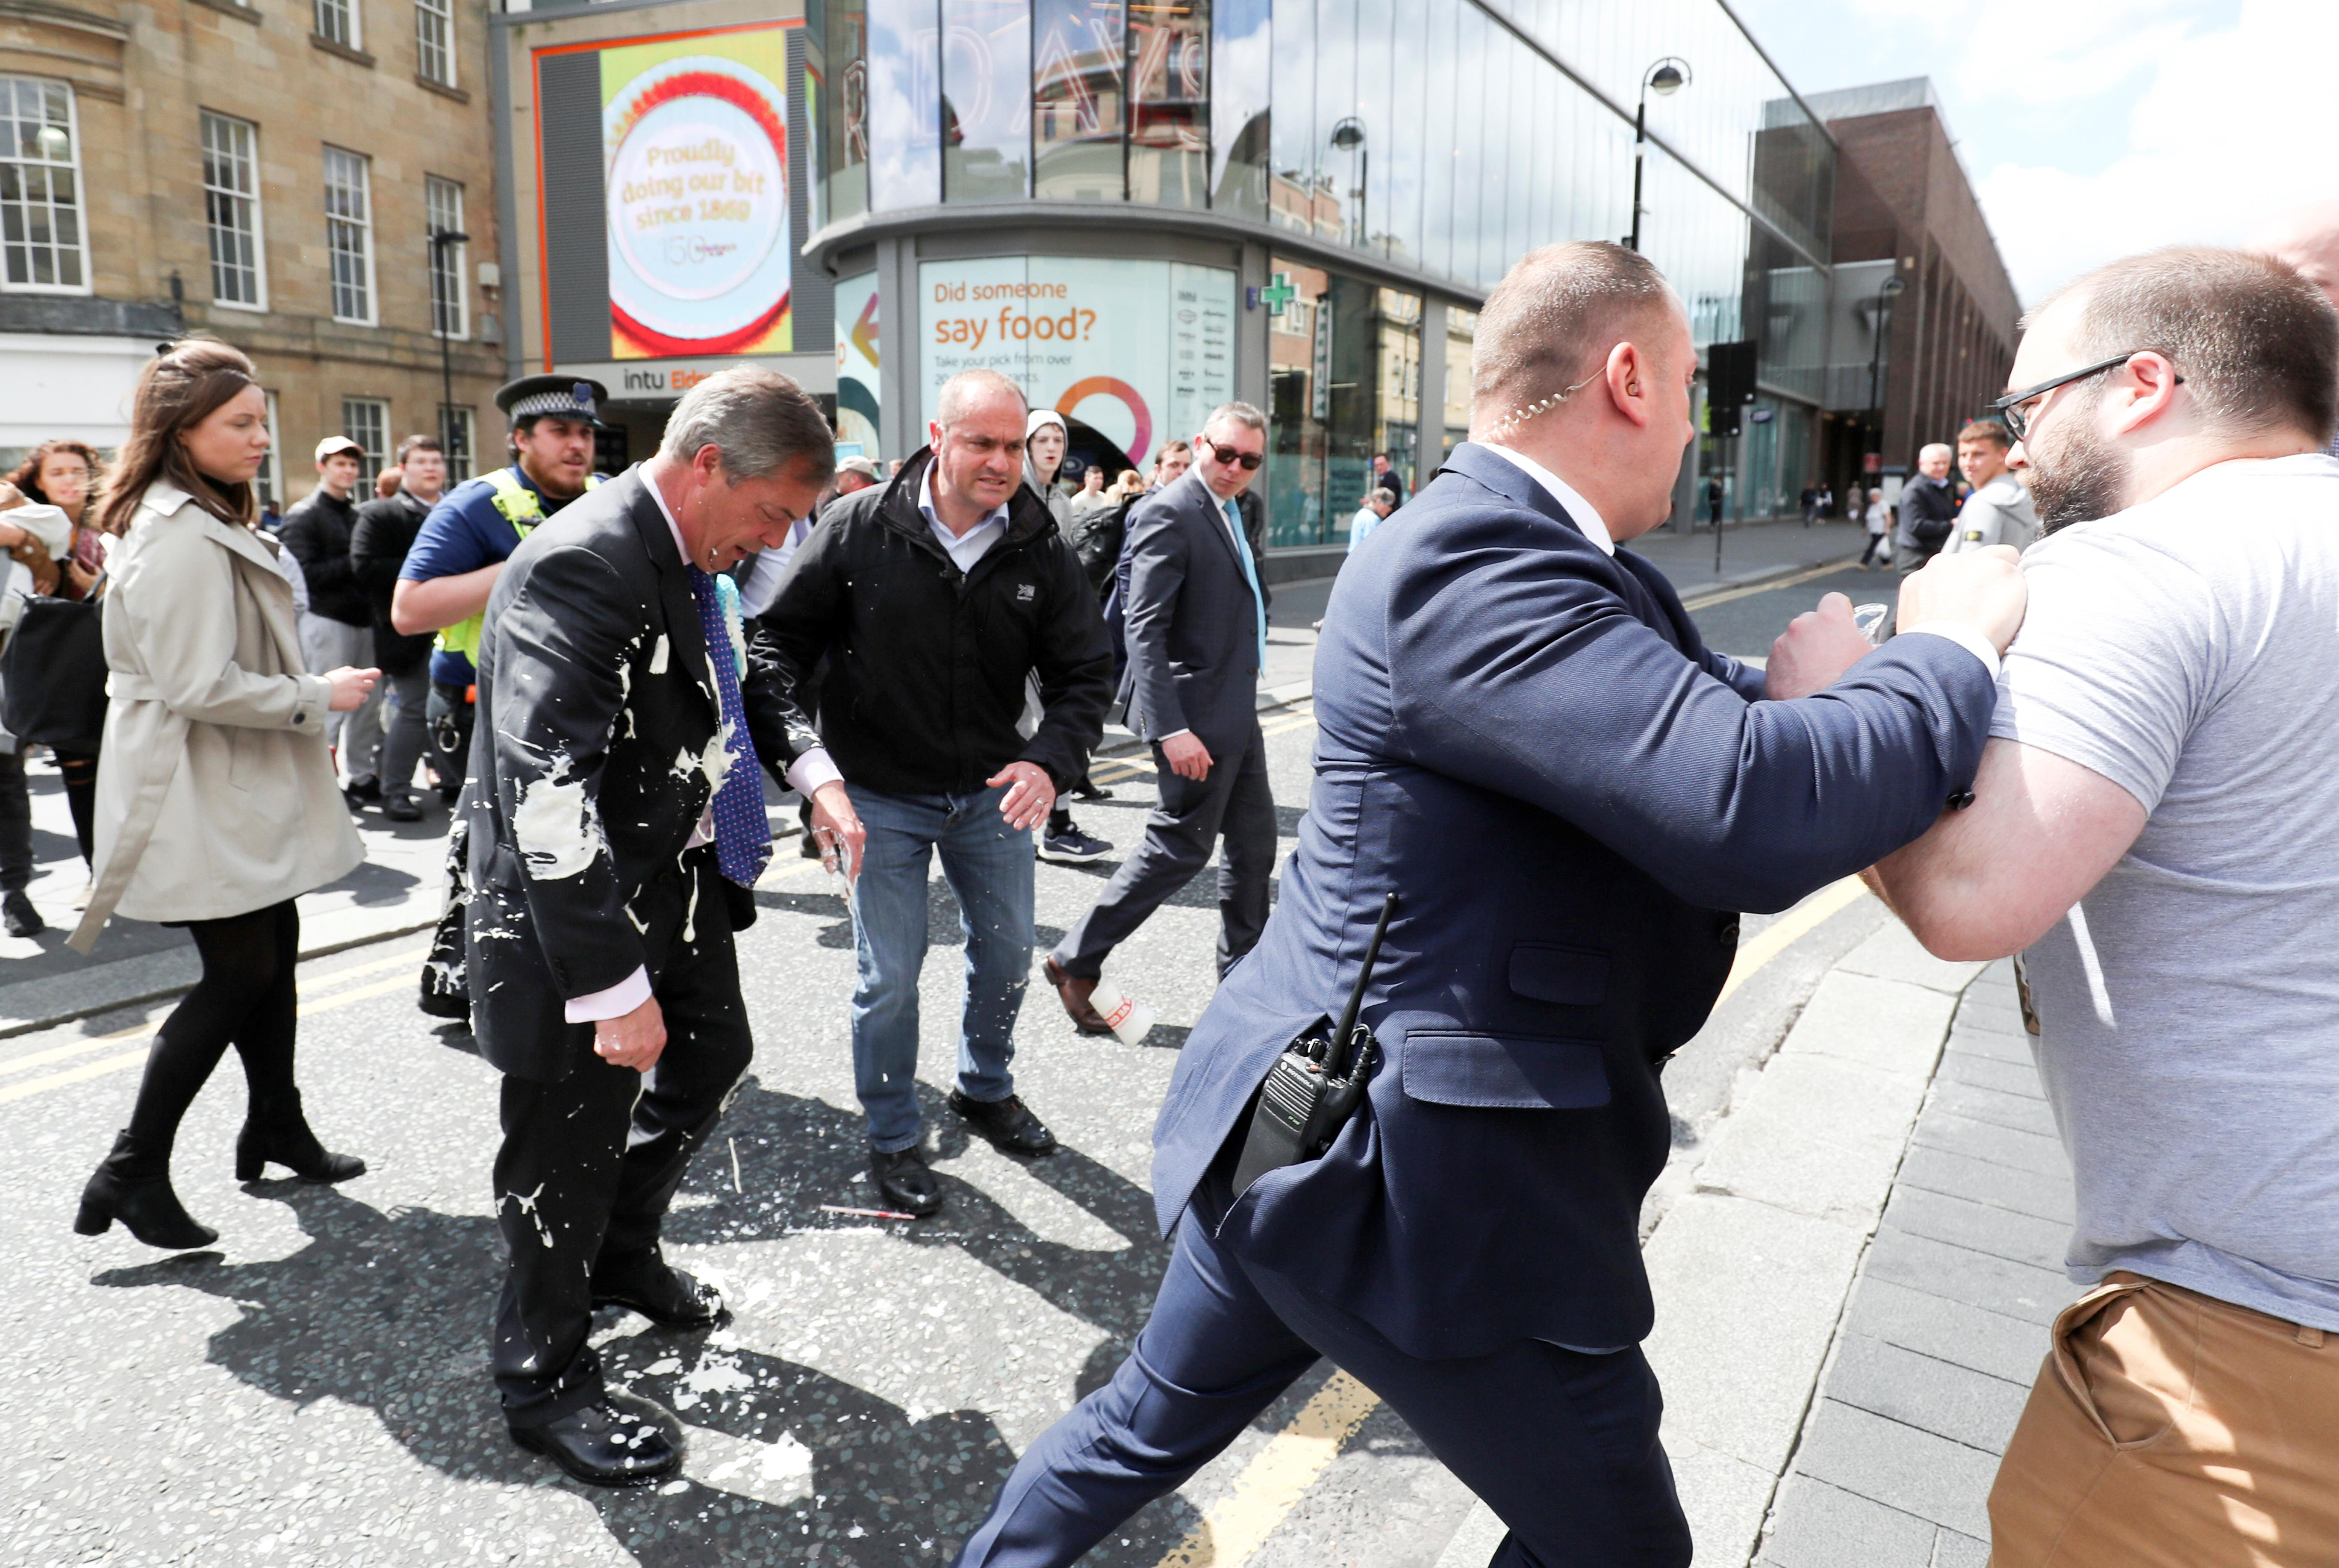 Man charged with throwing a milkshake at Brexit Party's Farage